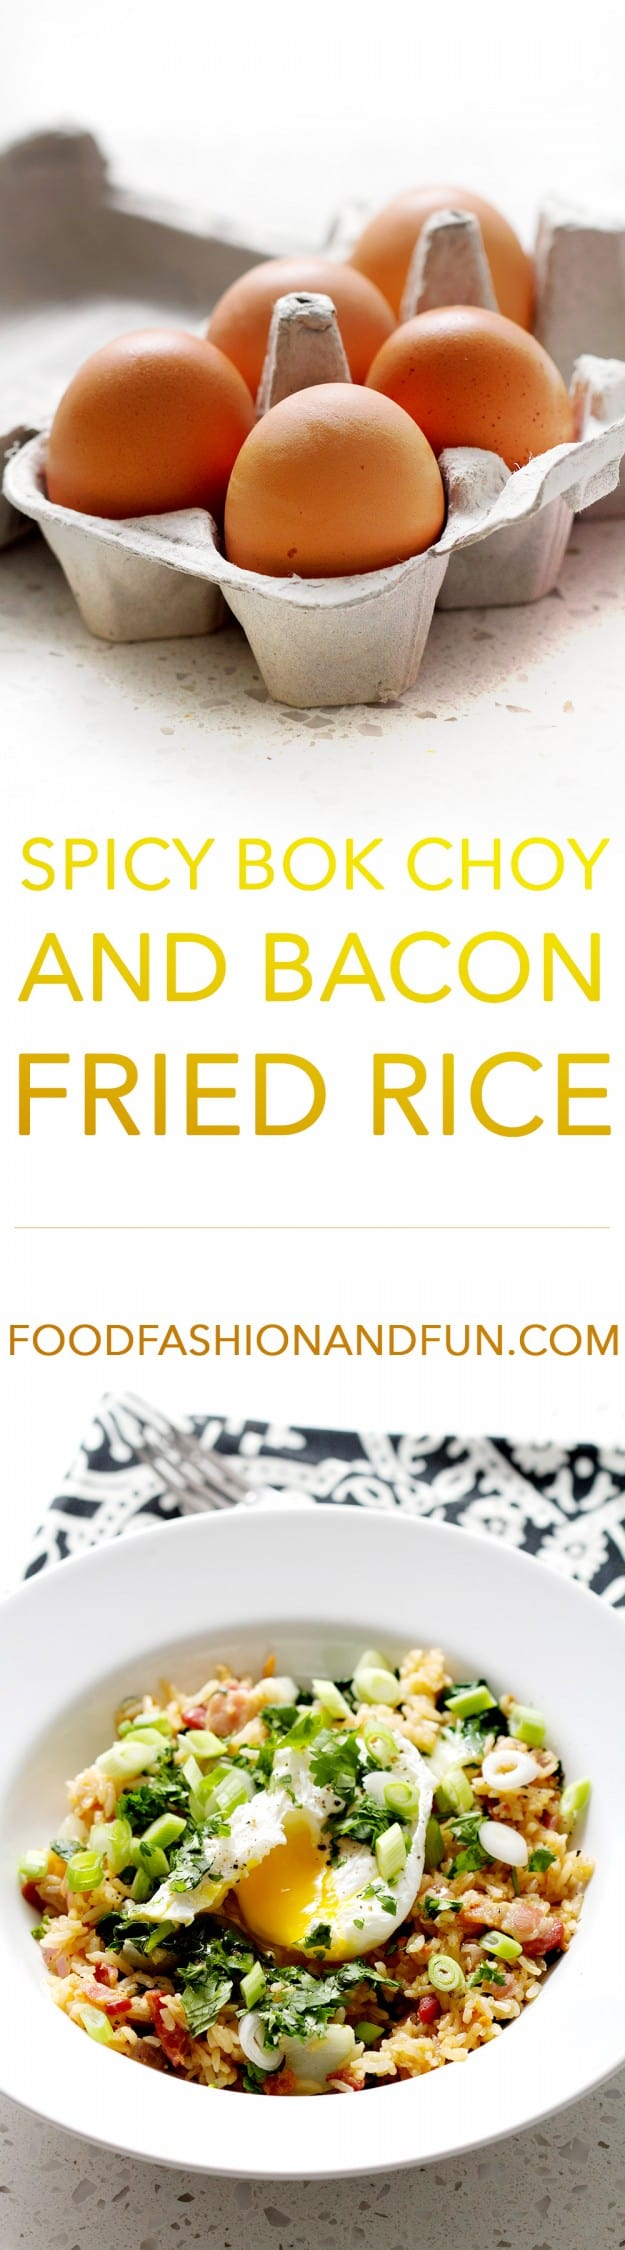 Spicy Bok Choy and Bacon Fried Rice is a take on traditional fried rice that's made with bok choy, bacon and then topped with a poached egg. This recipe is gluten, egg, and soy free and suits the autoimmune protocol diet (AIP) and paleo diets.